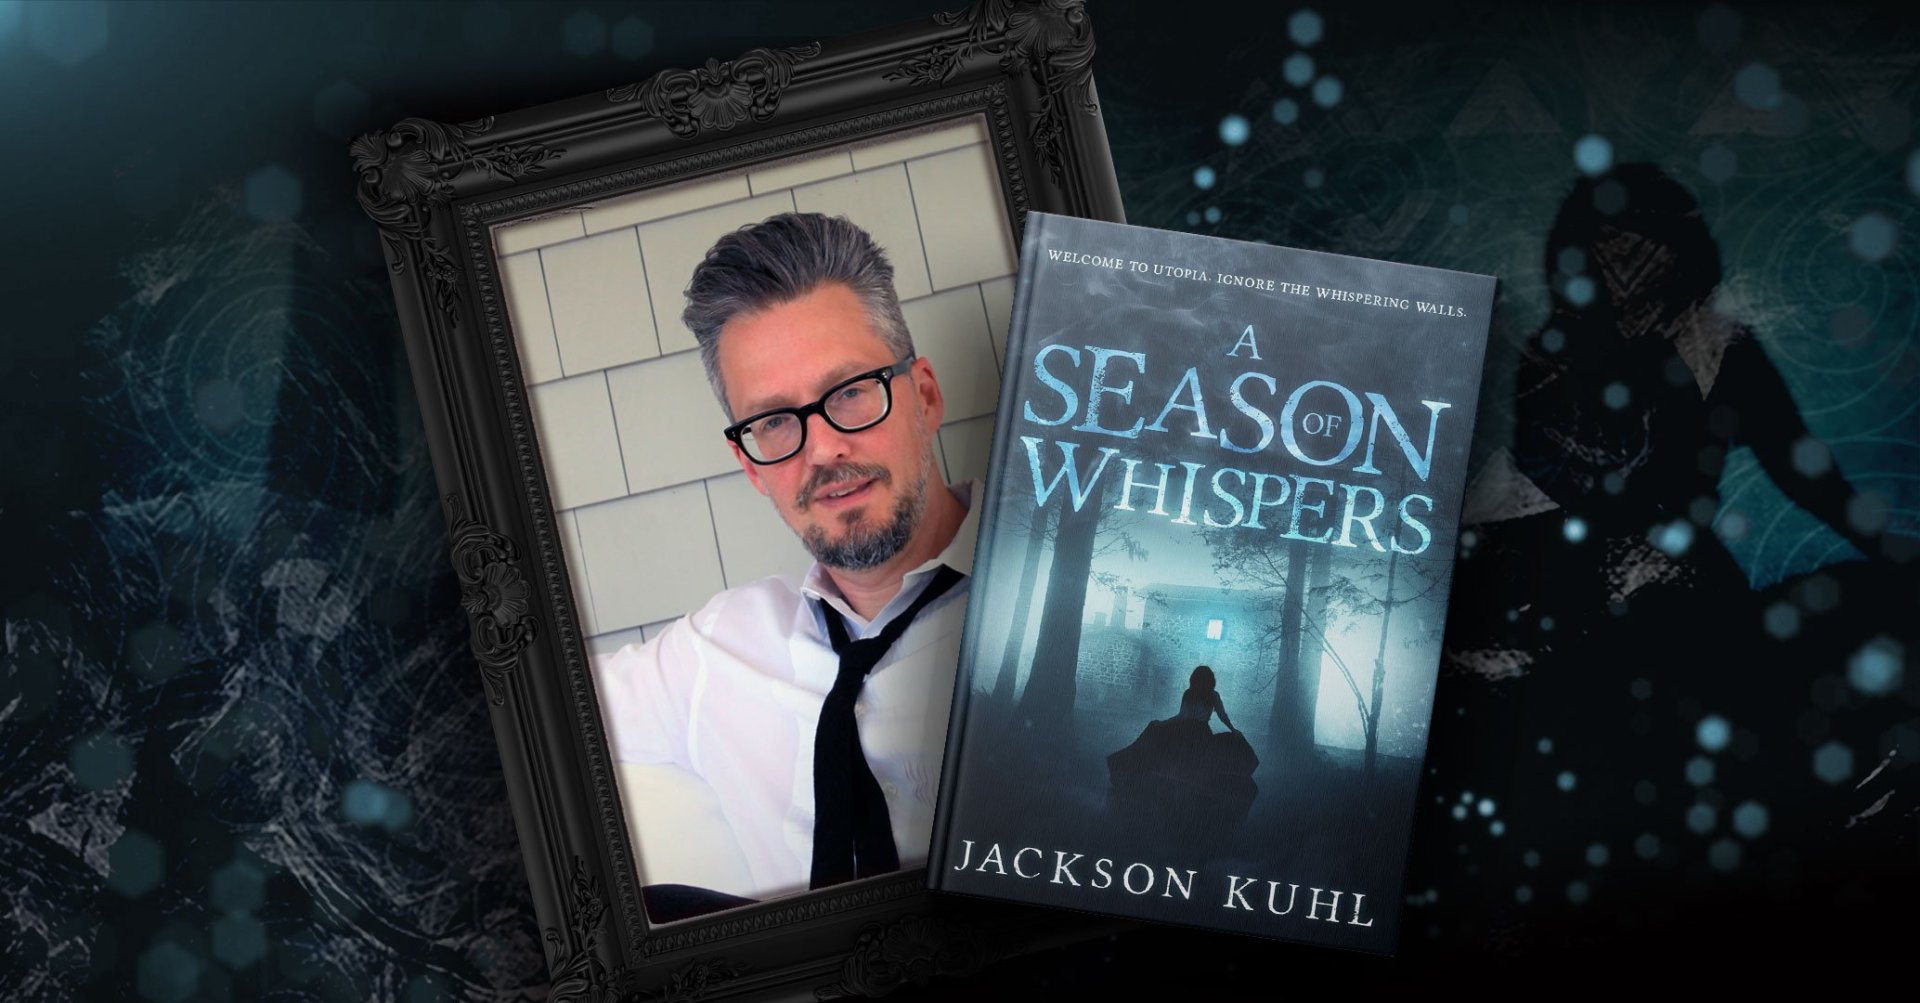 A Season of Whispers by Jackson Kuhl